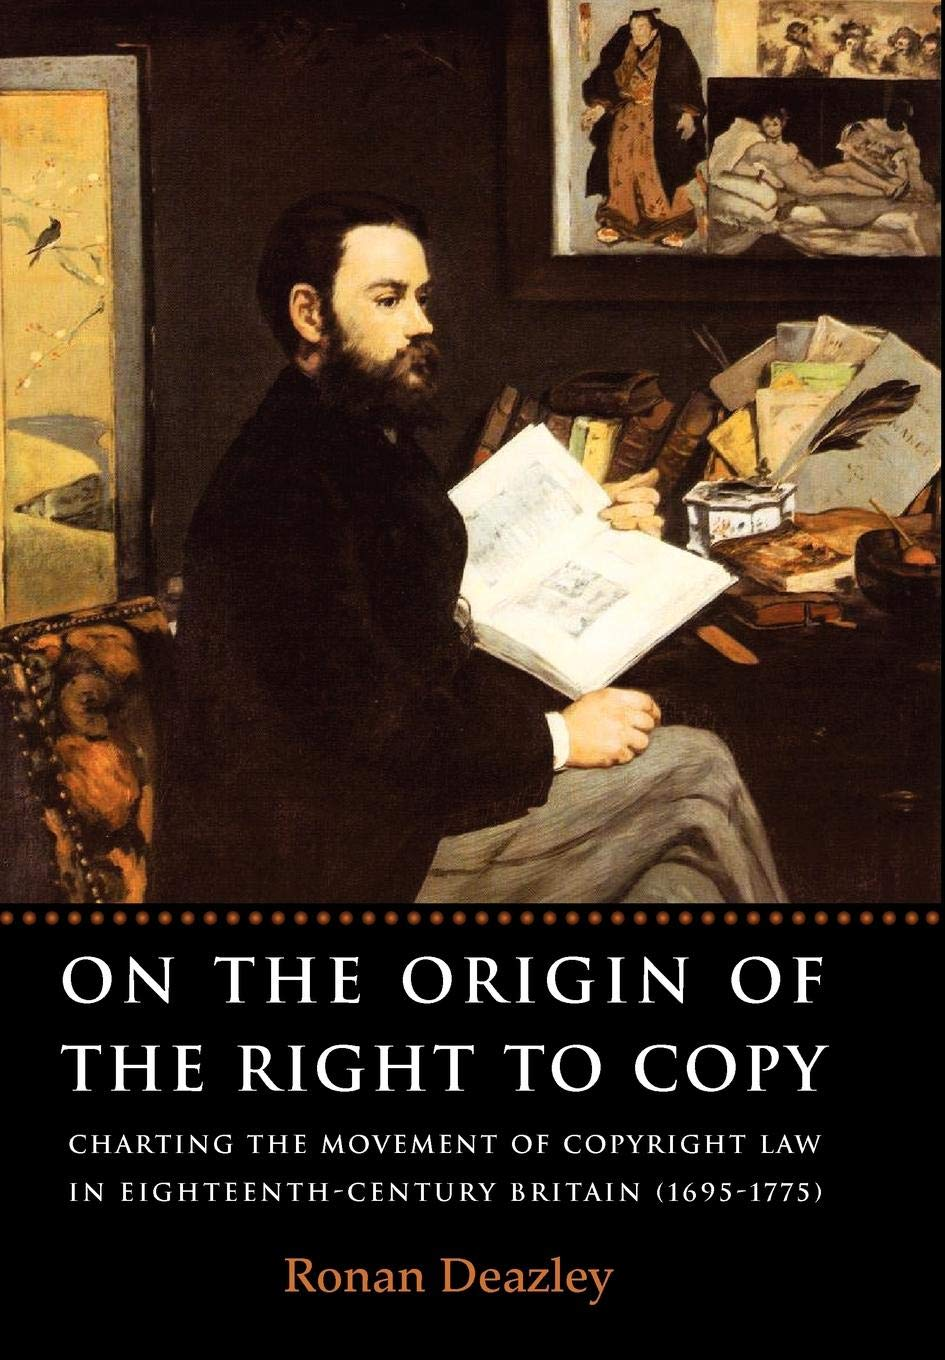 On the Origin of the Right to Copy: Charting the Movement of Copyright Law in Eighteenth Century Britain (1695-1775) by Hart Publishing